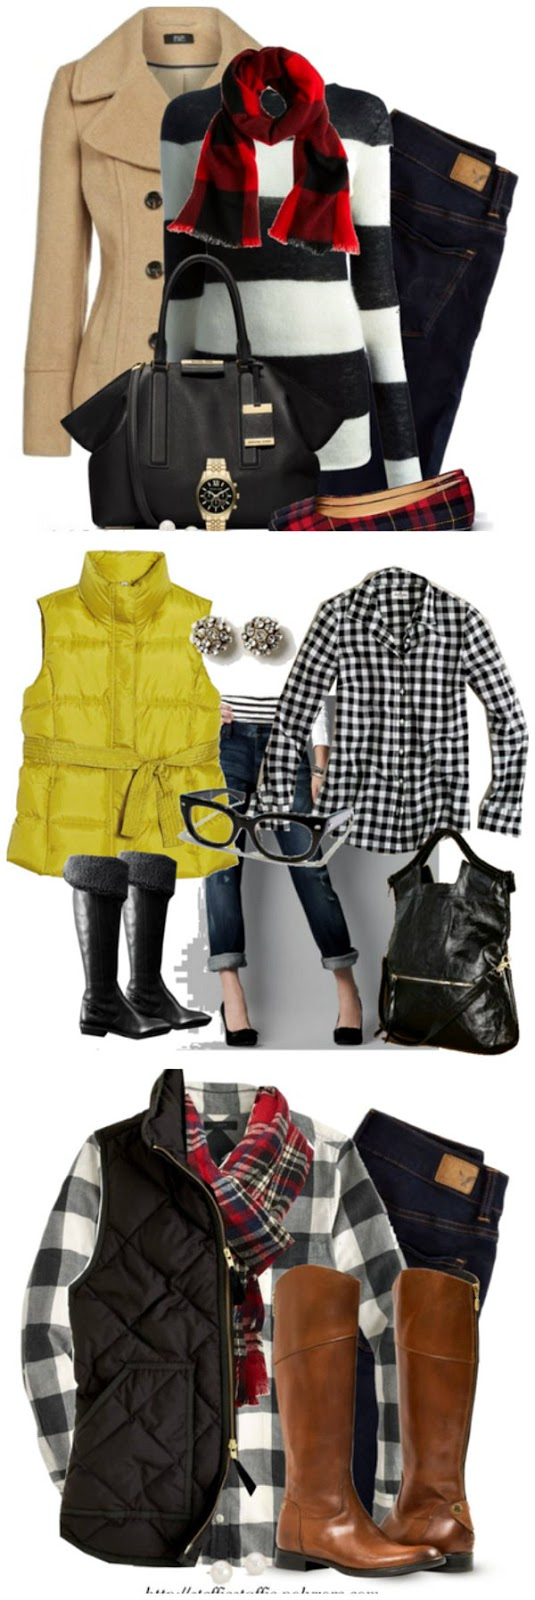 Plaid Outfit Ideas on Crafting in the Rain... Click through for sources